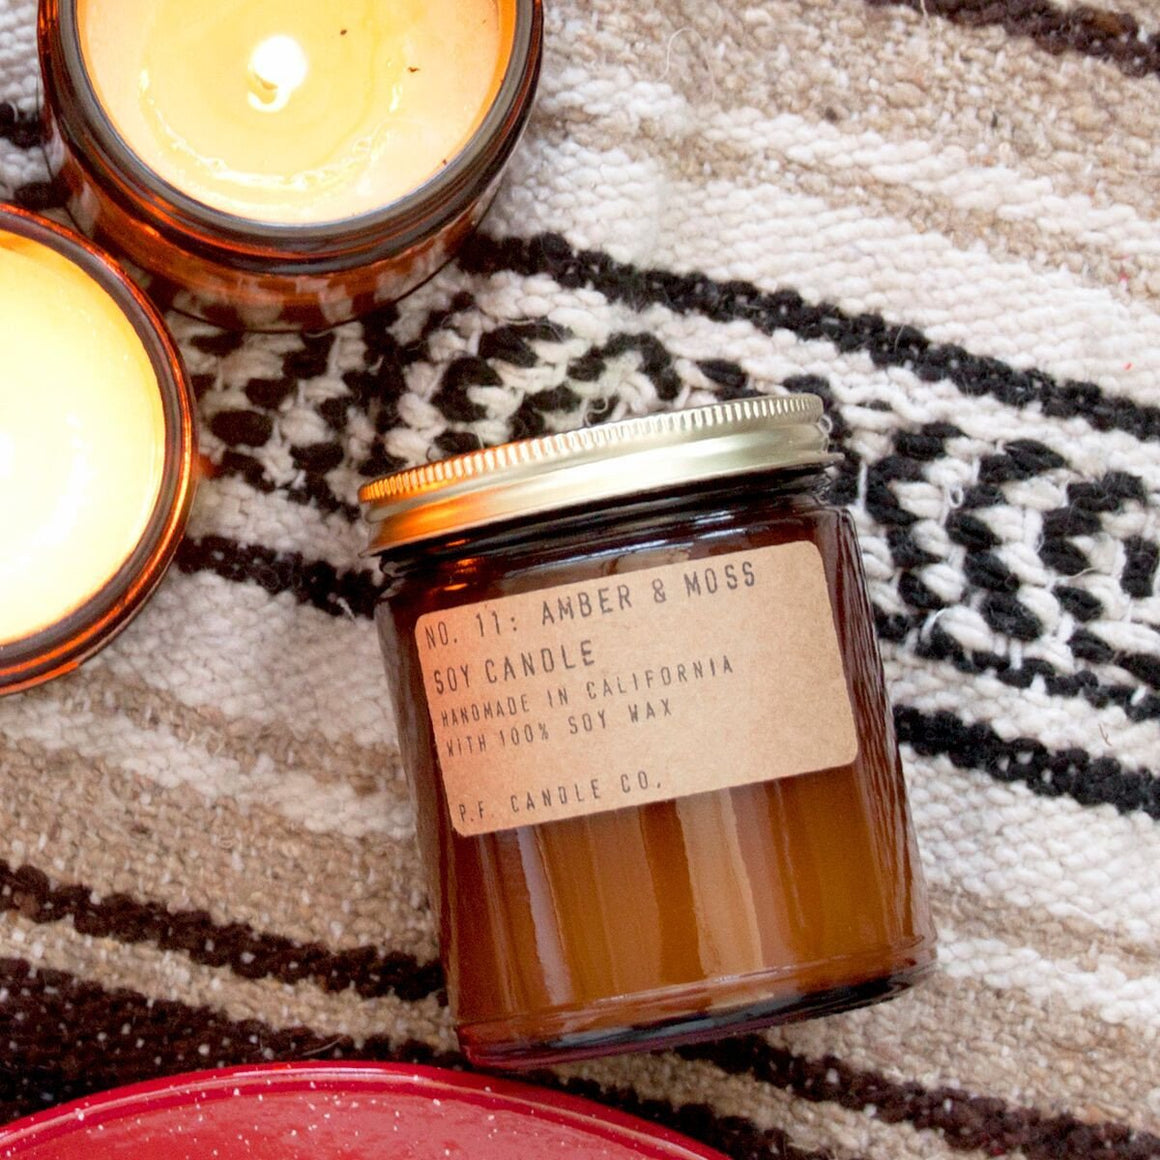 P.F. Candle Co.: Amber & Moss Candle, Mini